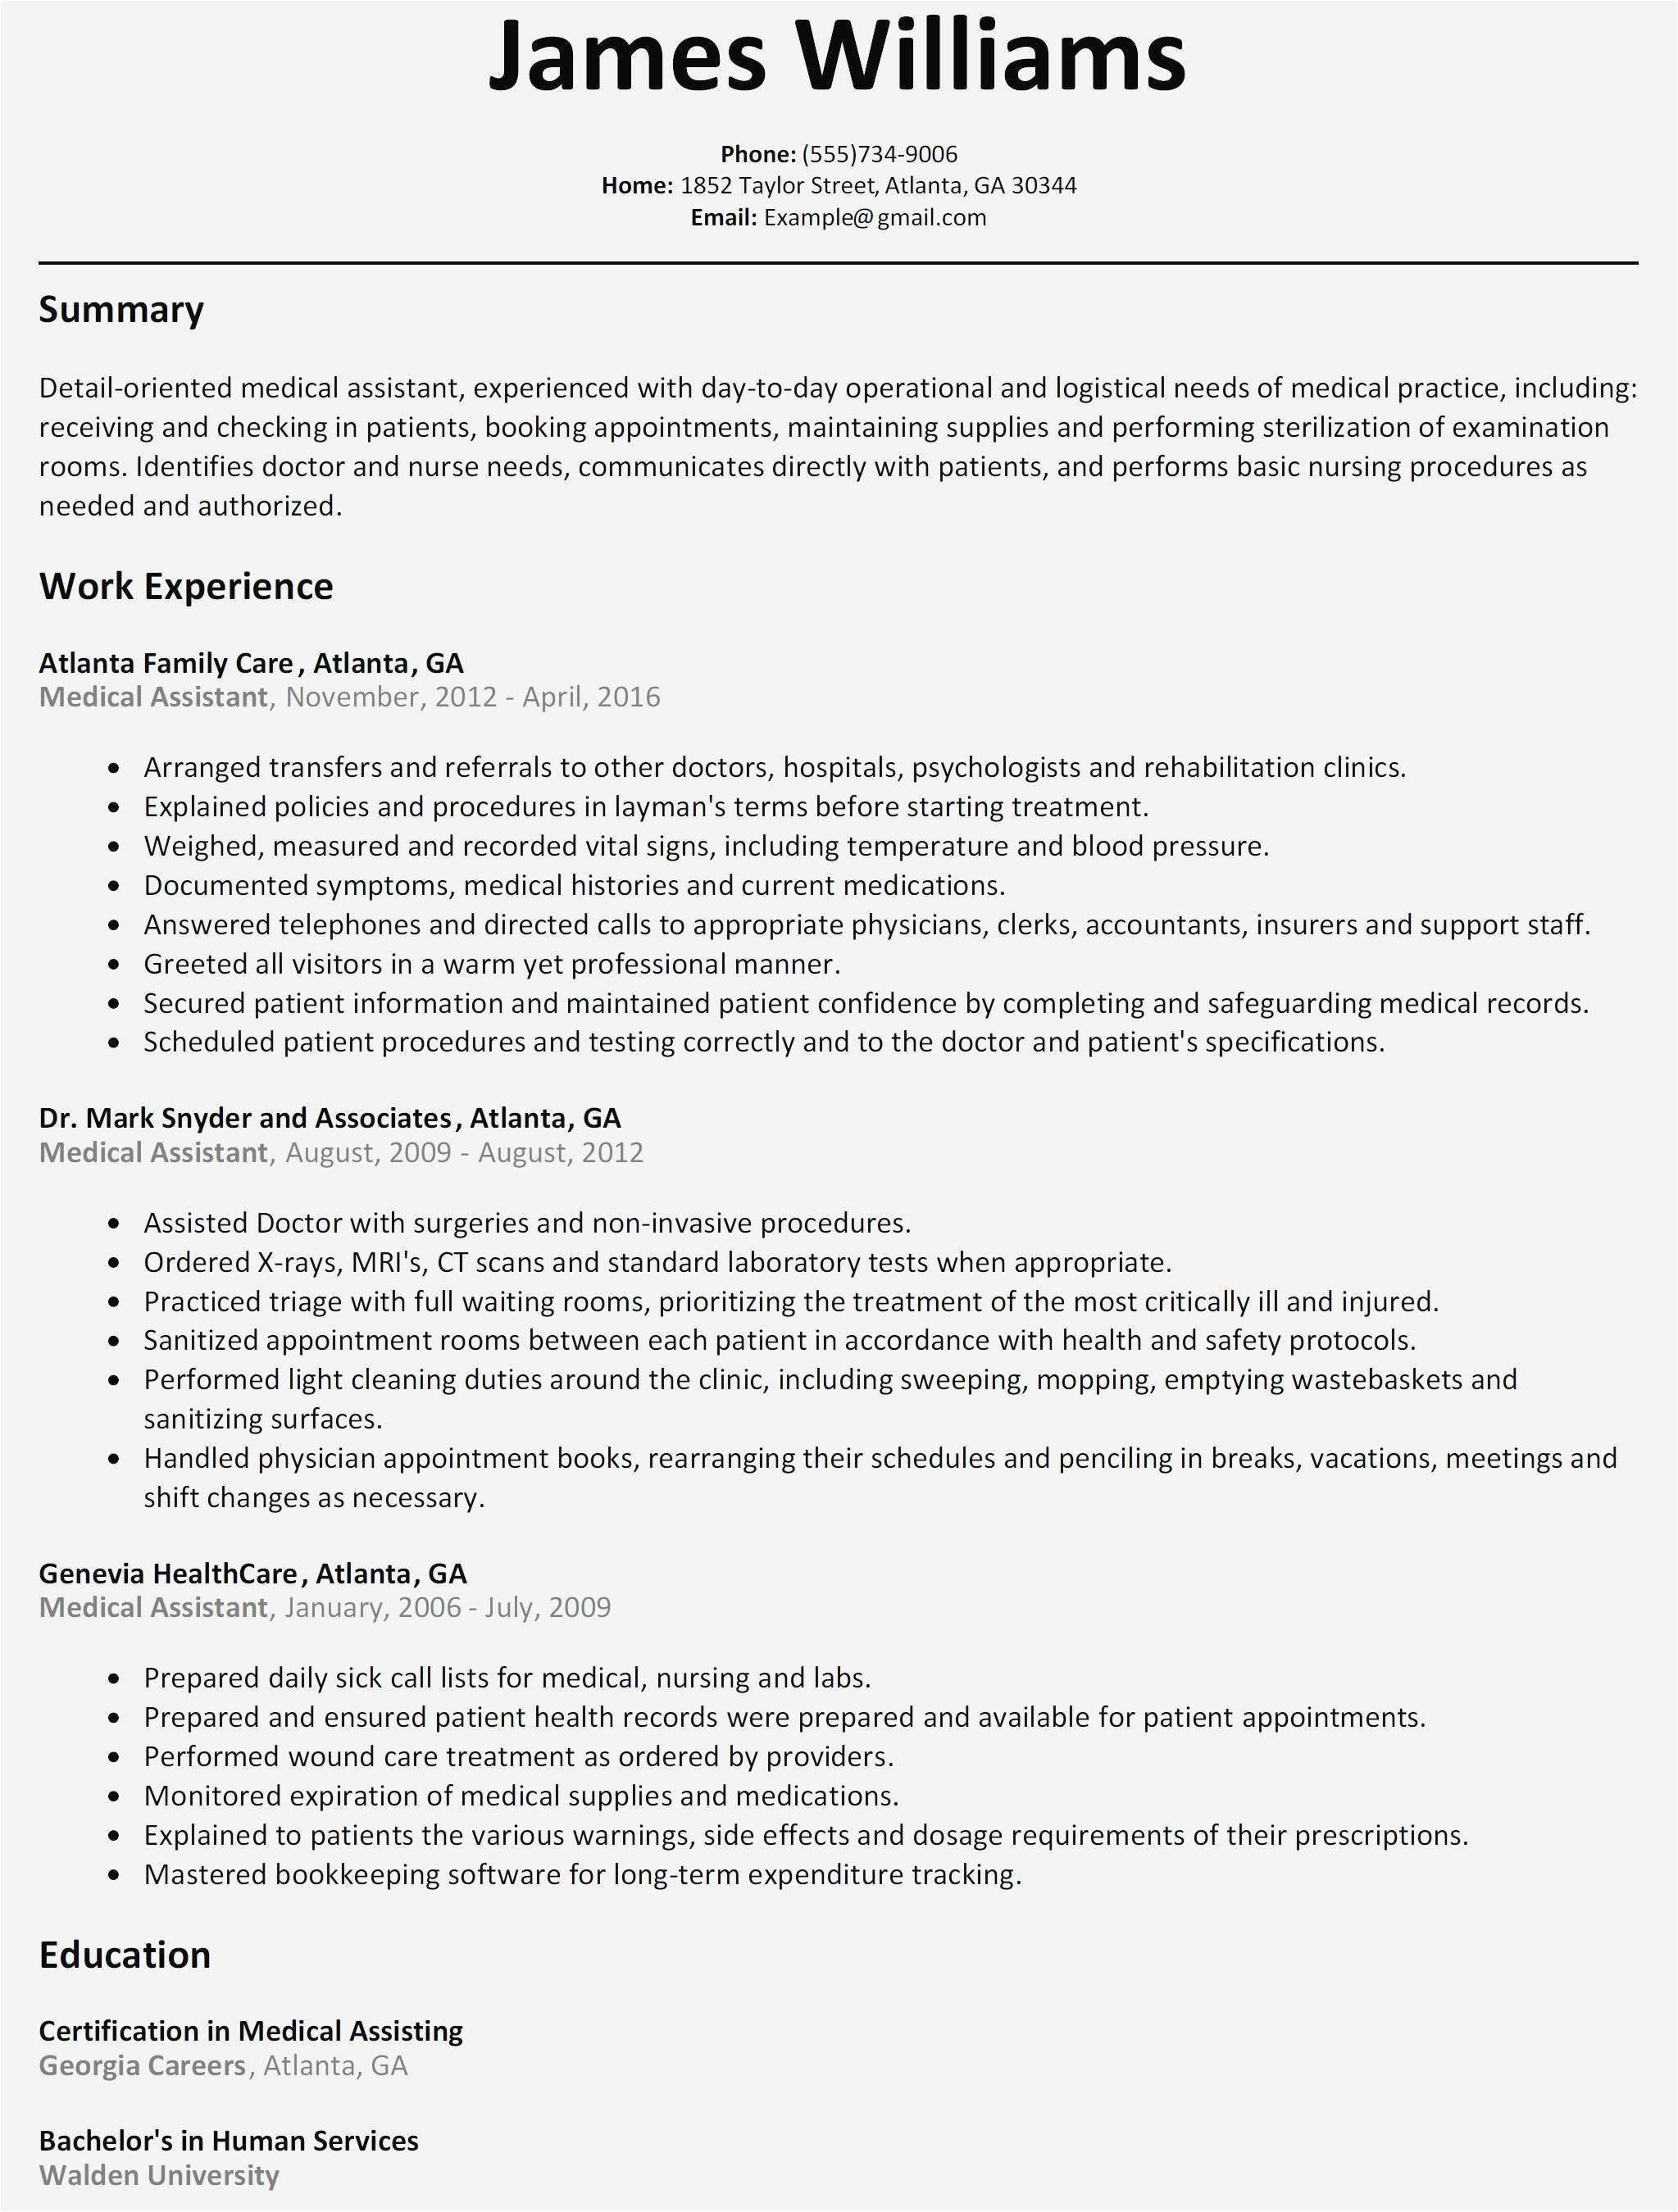 Resume Template for Mac - Free Resume Template Mac